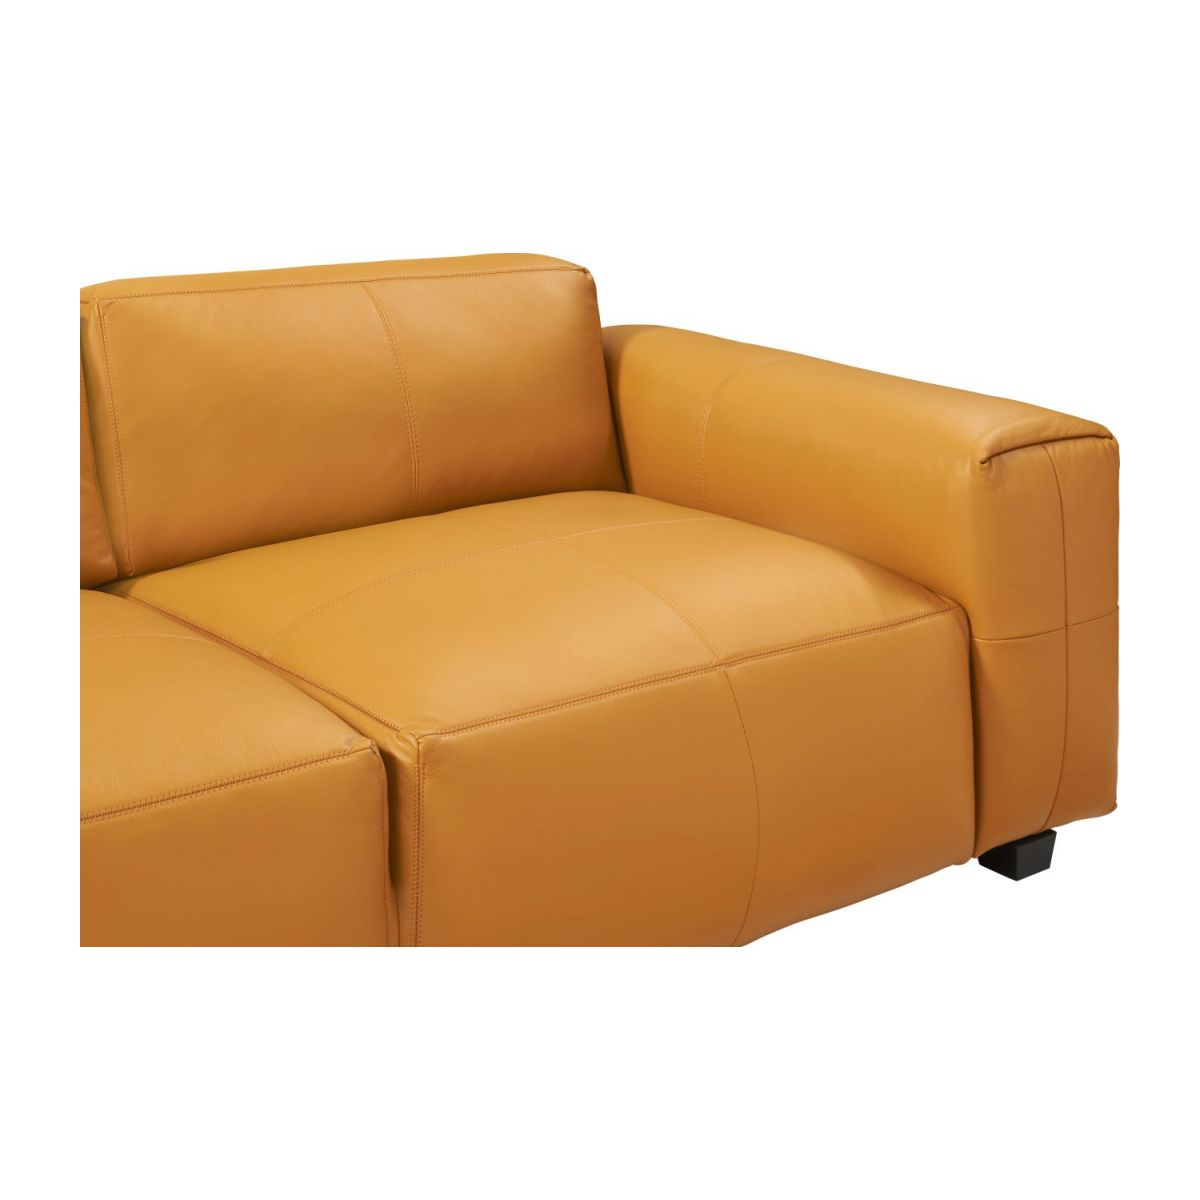 3 seater sofa in Savoy semi-aniline leather, cognac n°6